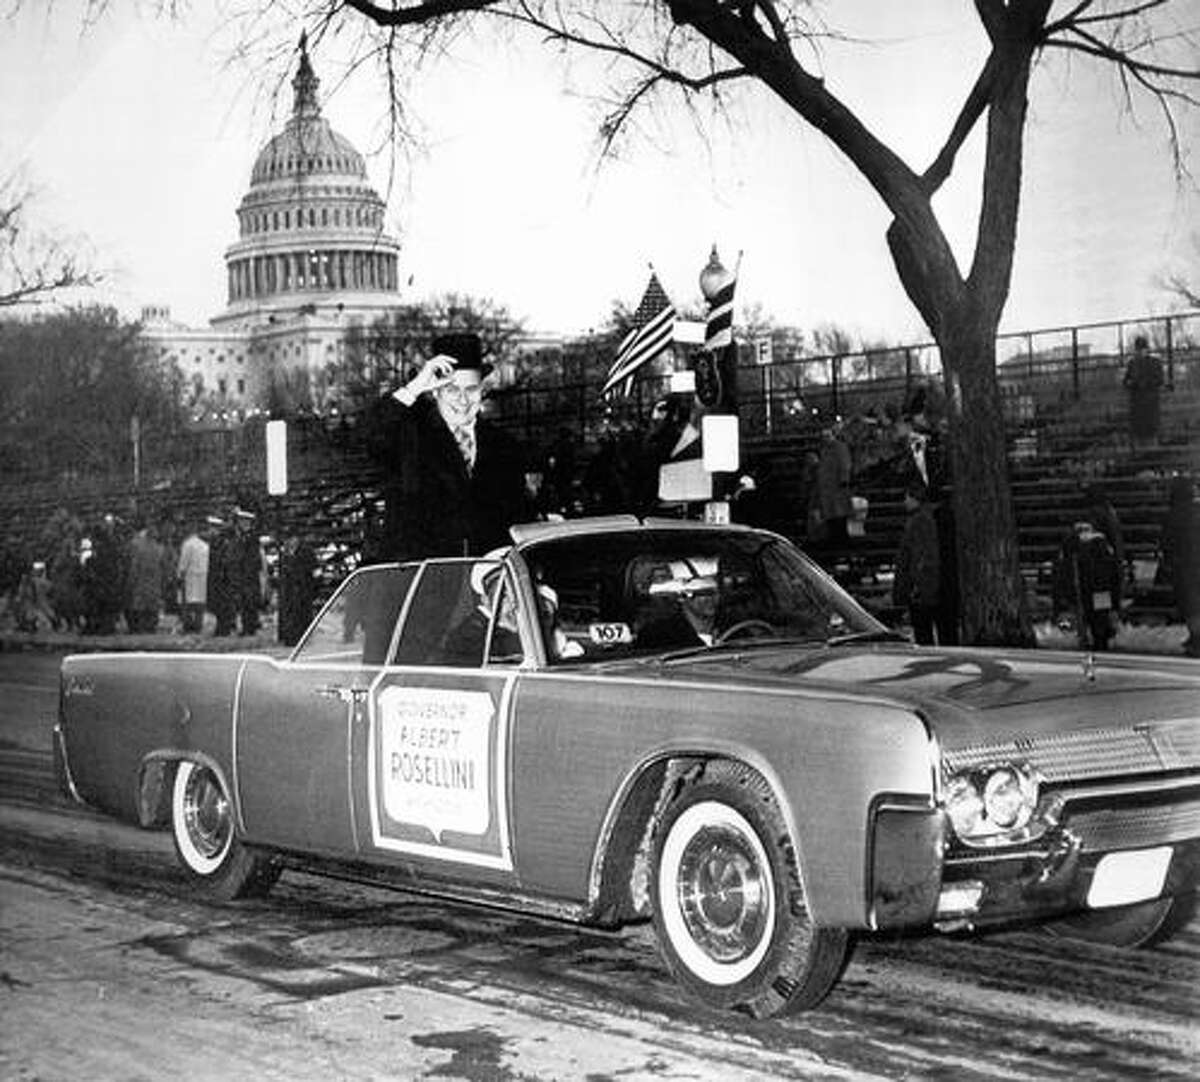 The January 1961 photo caption read: Smiling Gov. Albert Rosellini puts his hand to his heart as he acknowledges cheers from spectators along Constitution Avenue, part of inaugural parade route today.